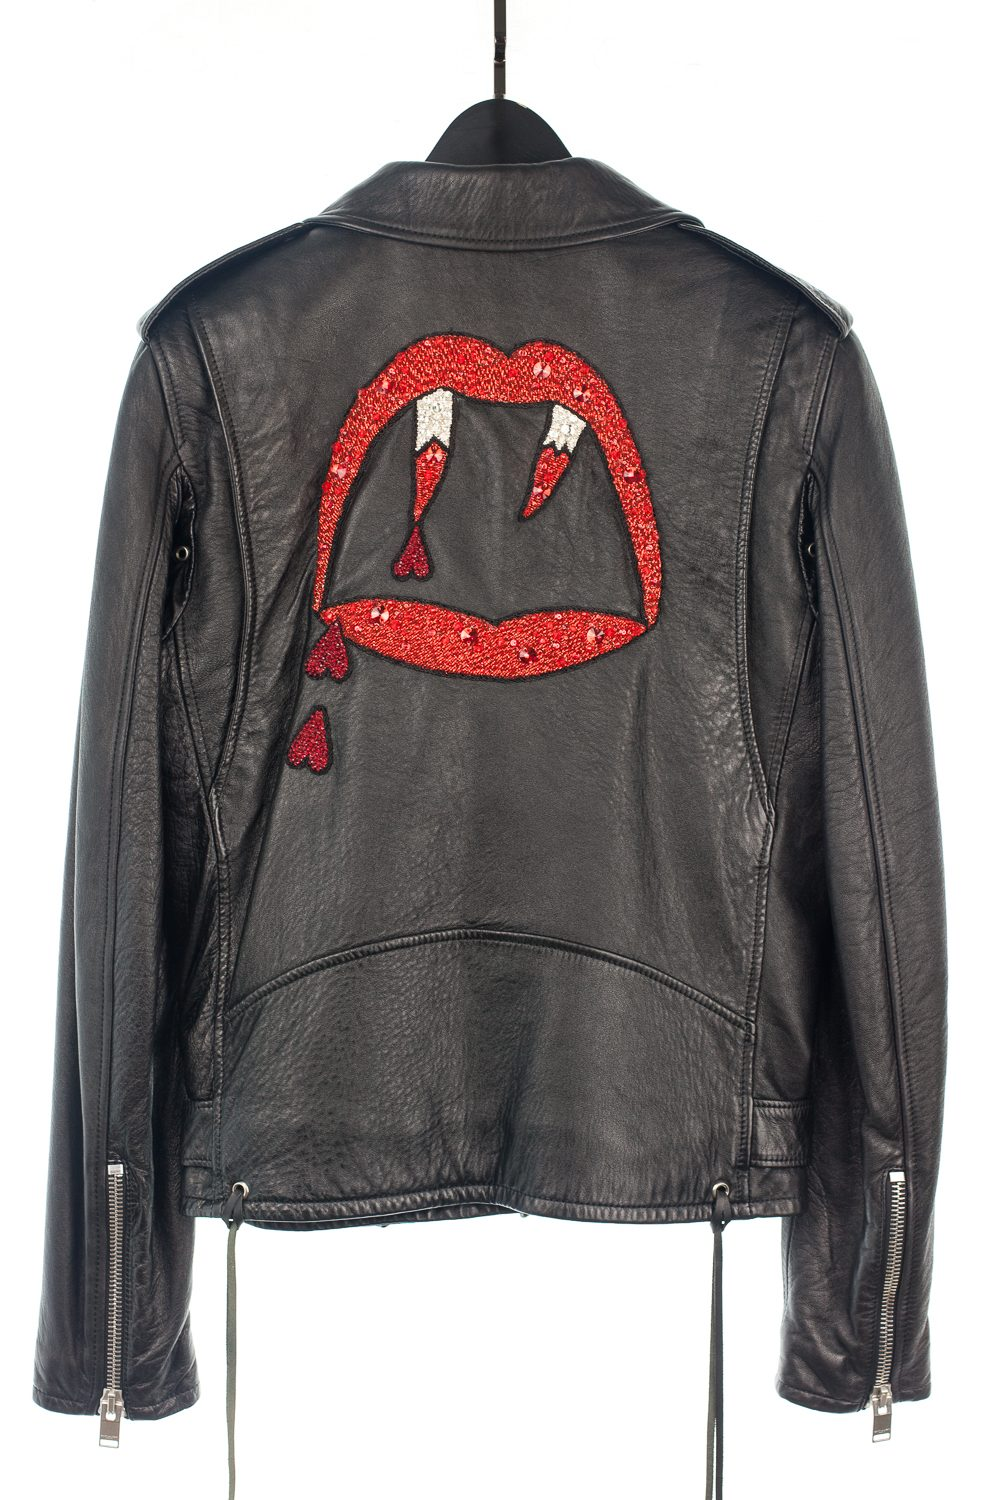 SS17 Bloodluster Beaded Crystal Leather Jacket